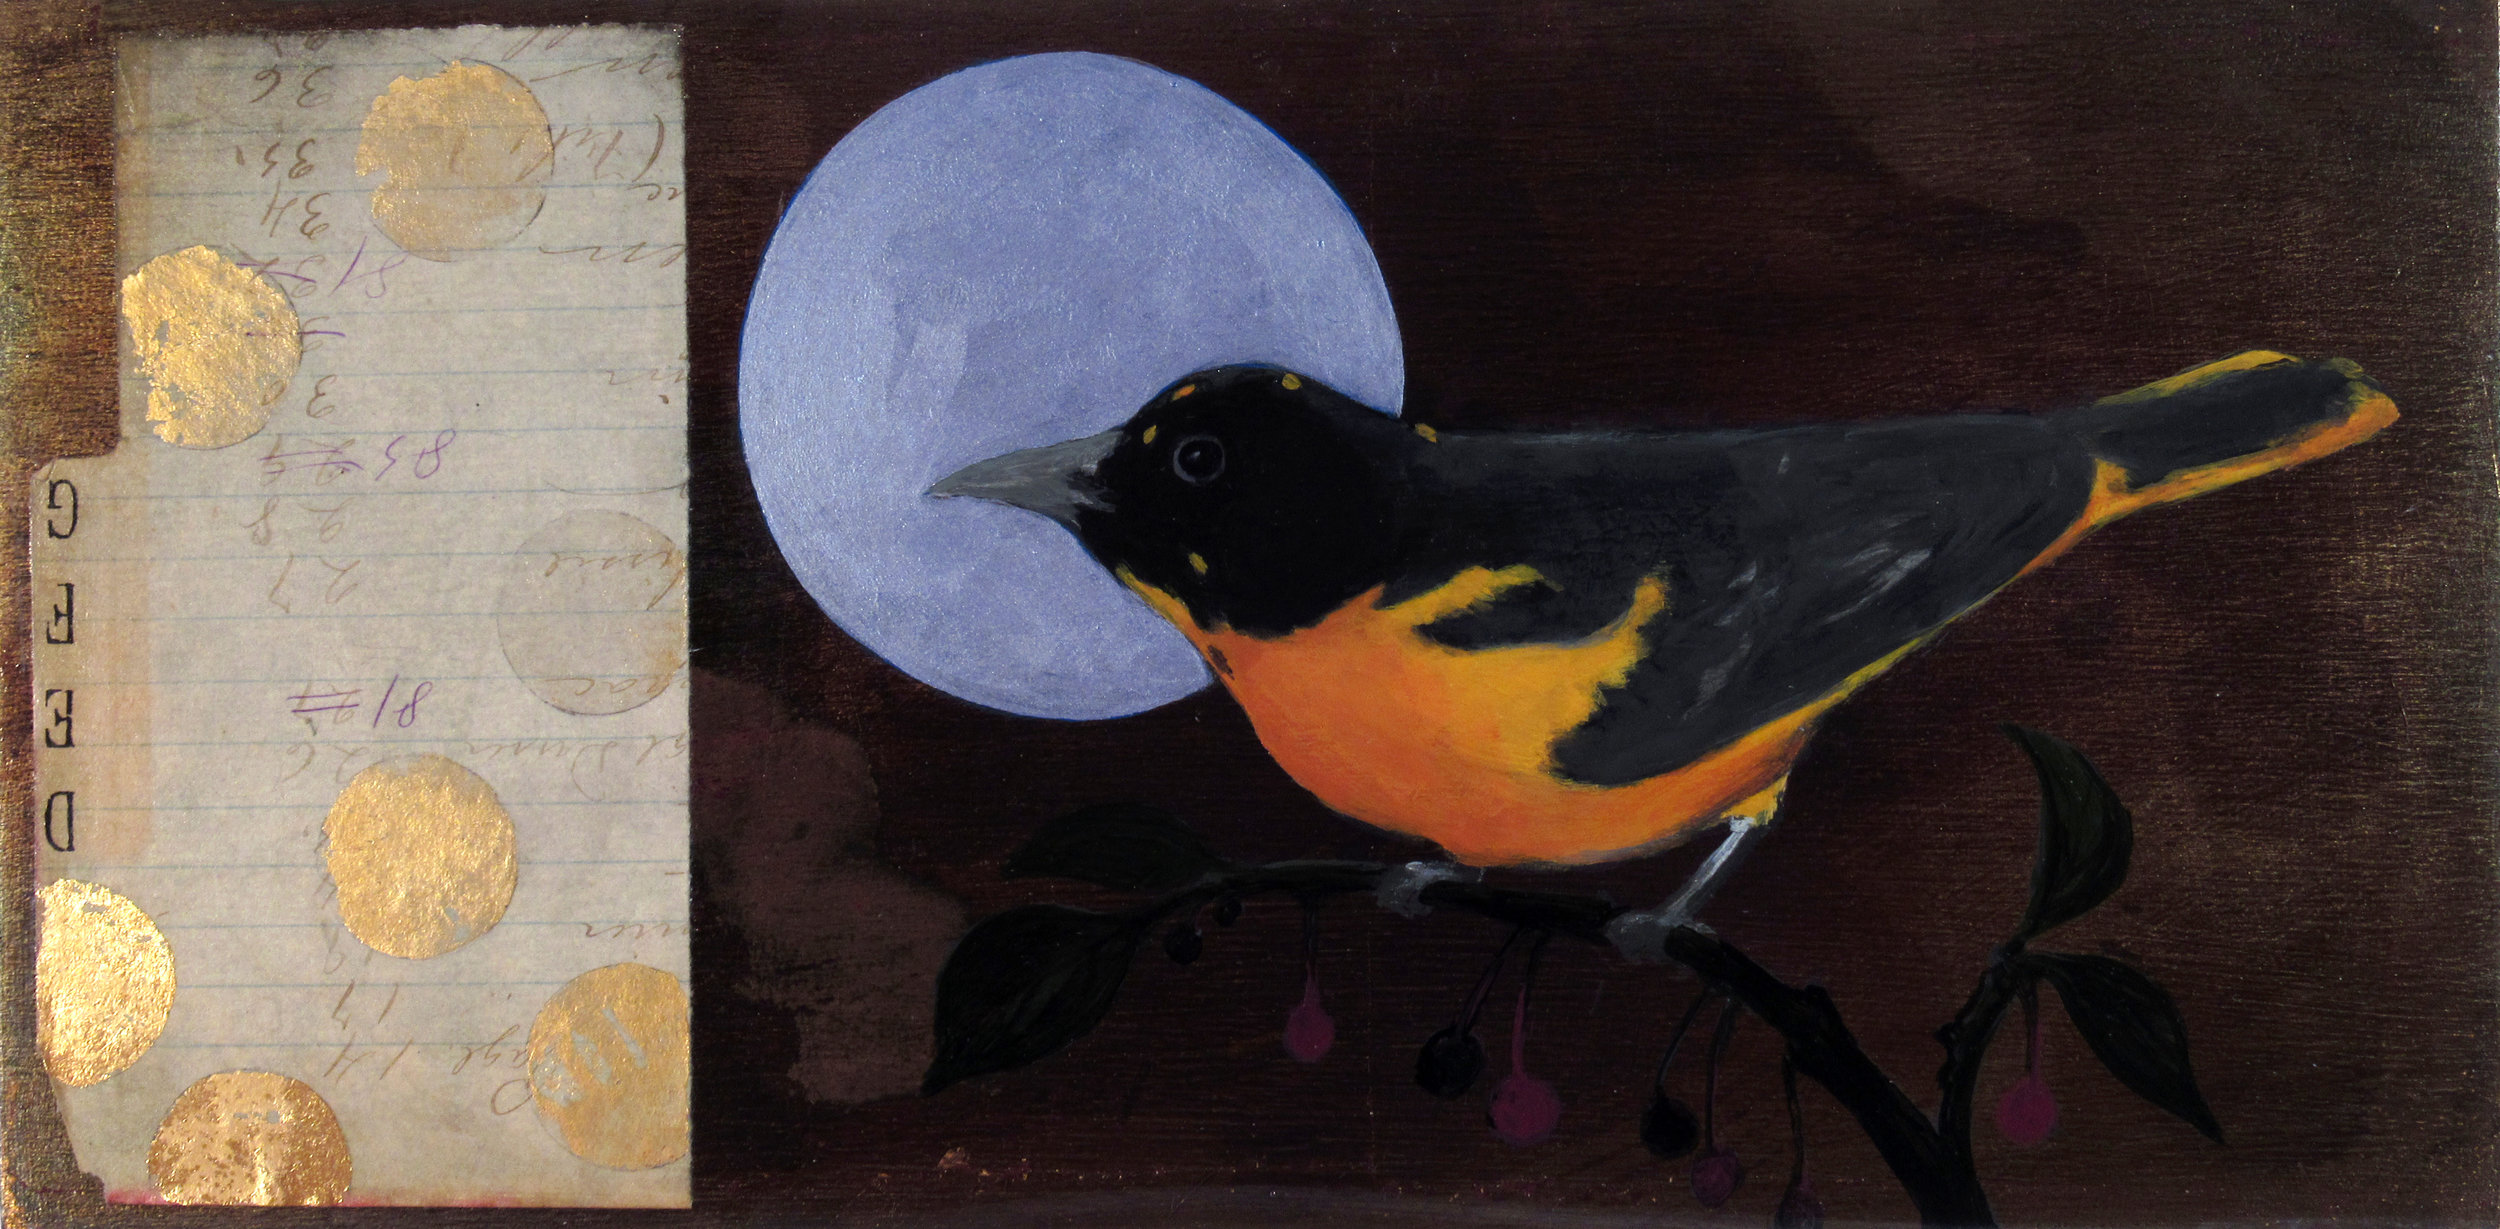 Lunar Cycles - Oriole with Serviceberry